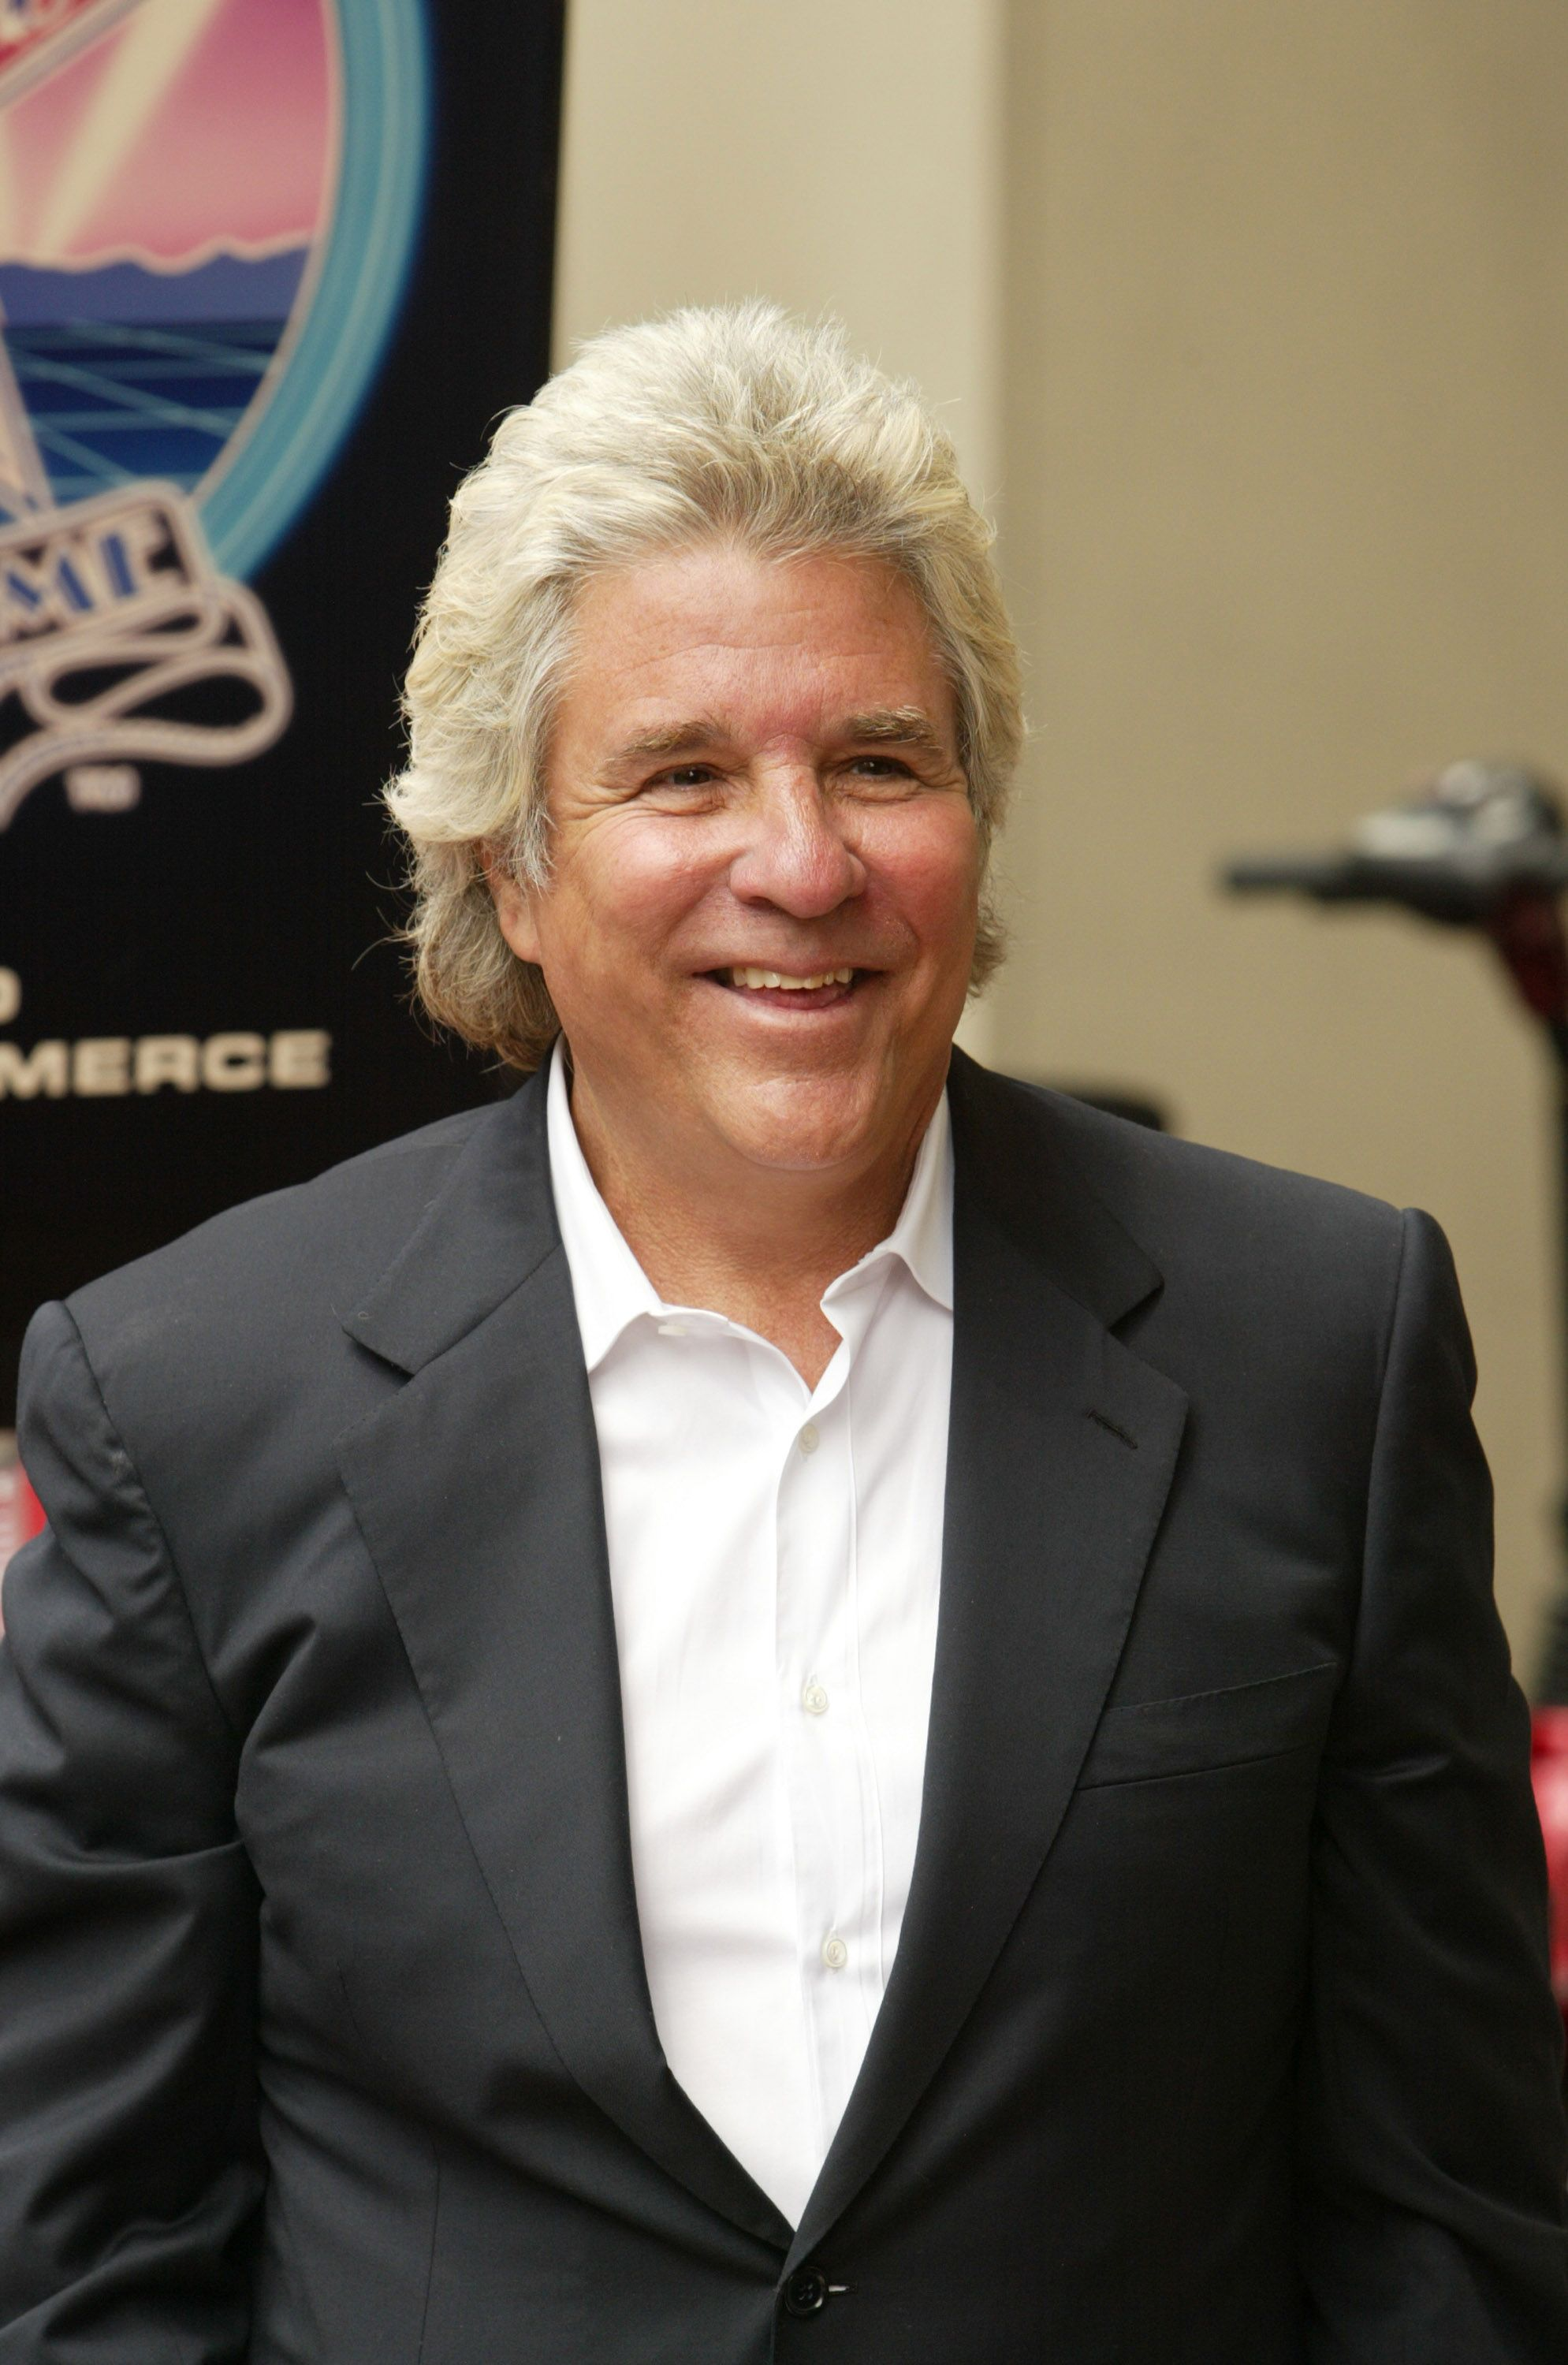 Jon Peters receiving a star on the Walk of Fame on May 01, 2007 | Photo: Jesse Grant/Wire Image/Getty Images